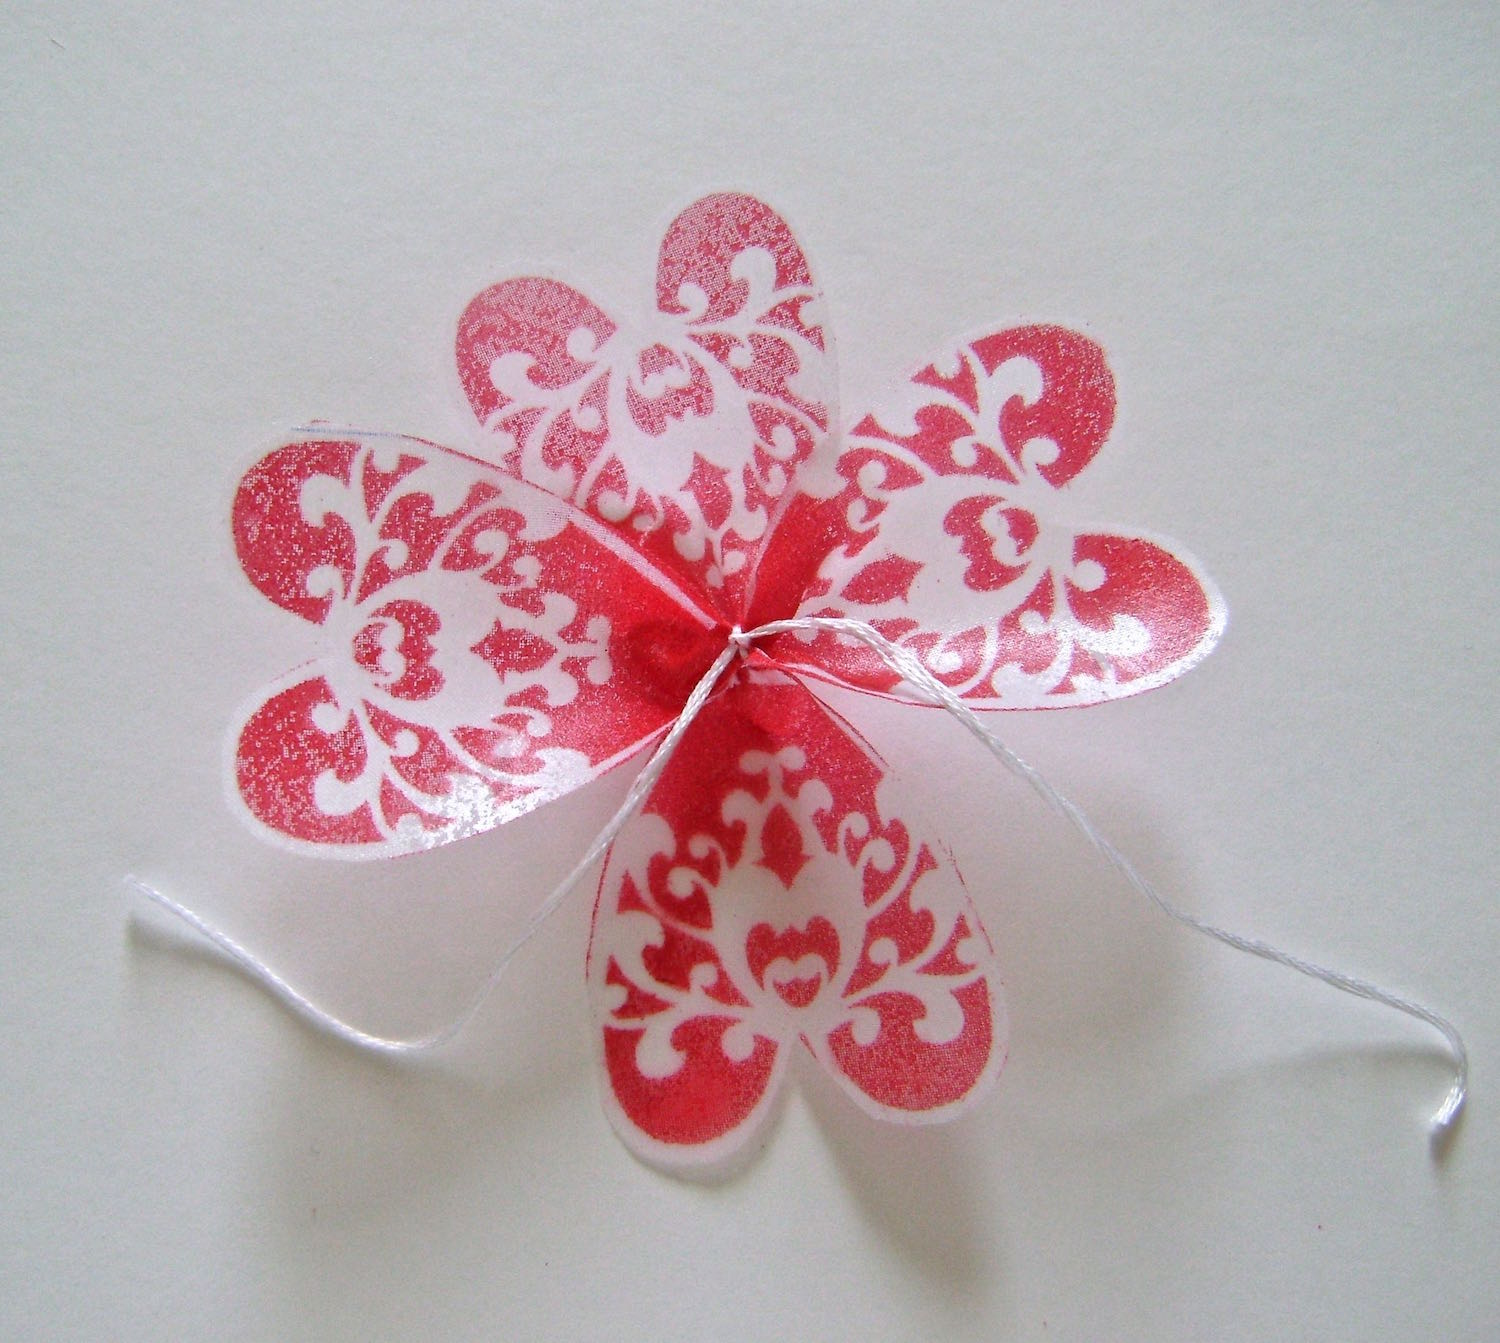 step 9 - To assemble the flower, stack the petals with the largest on the bottom and the smallest on top. Stack each section in a different direction than the one below it. Each time you add another section, tie the string tails under the section below it. Knot the string and cut off the tails.